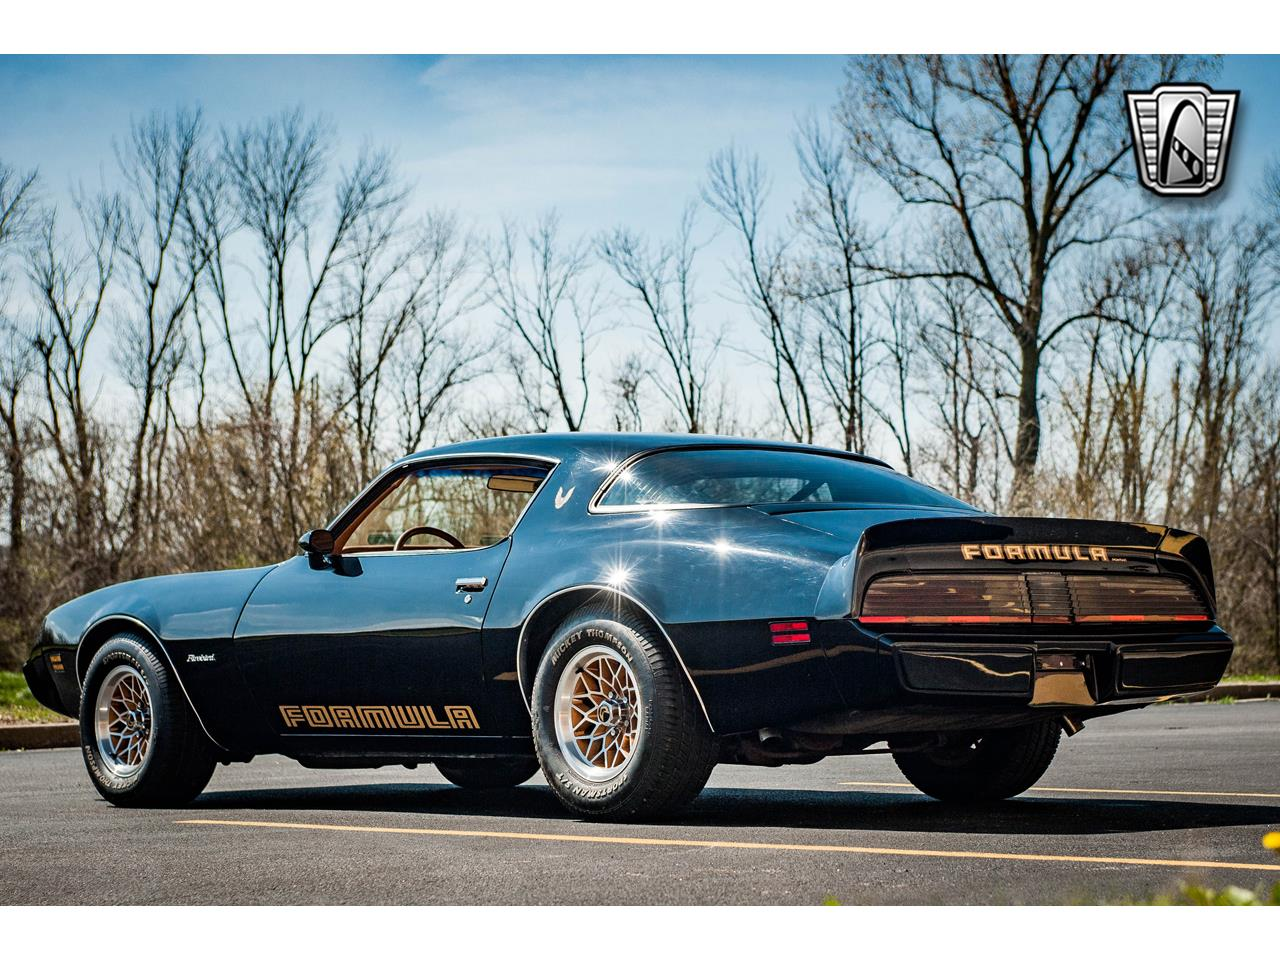 Large Picture of '79 Firebird located in Illinois Offered by Gateway Classic Cars - St. Louis - QB8A